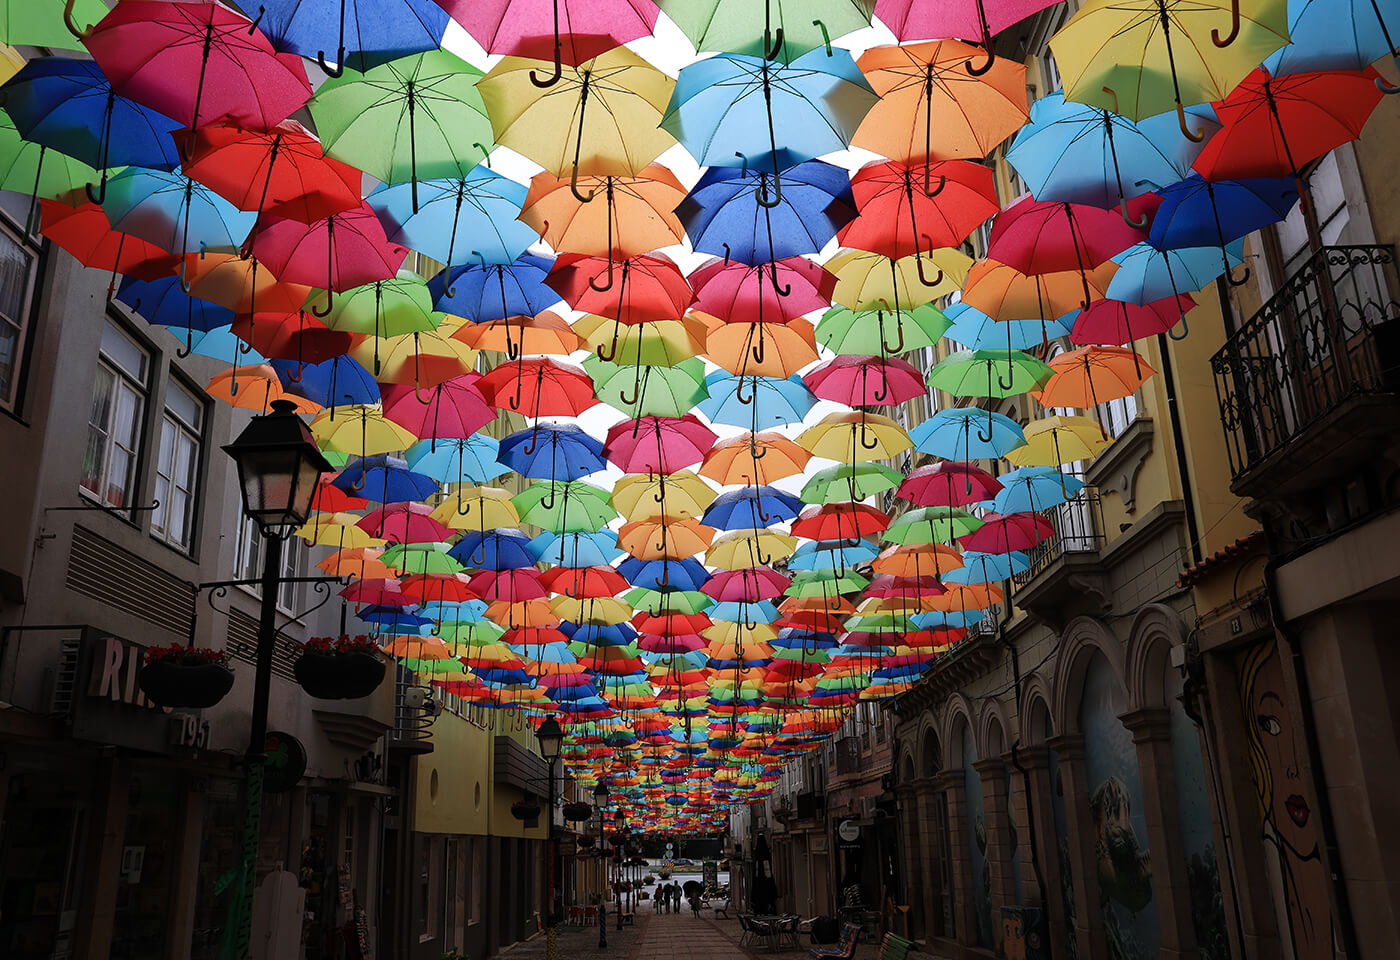 Photograph of umbrellas on street taken using RF 28-70mm f/2L USM